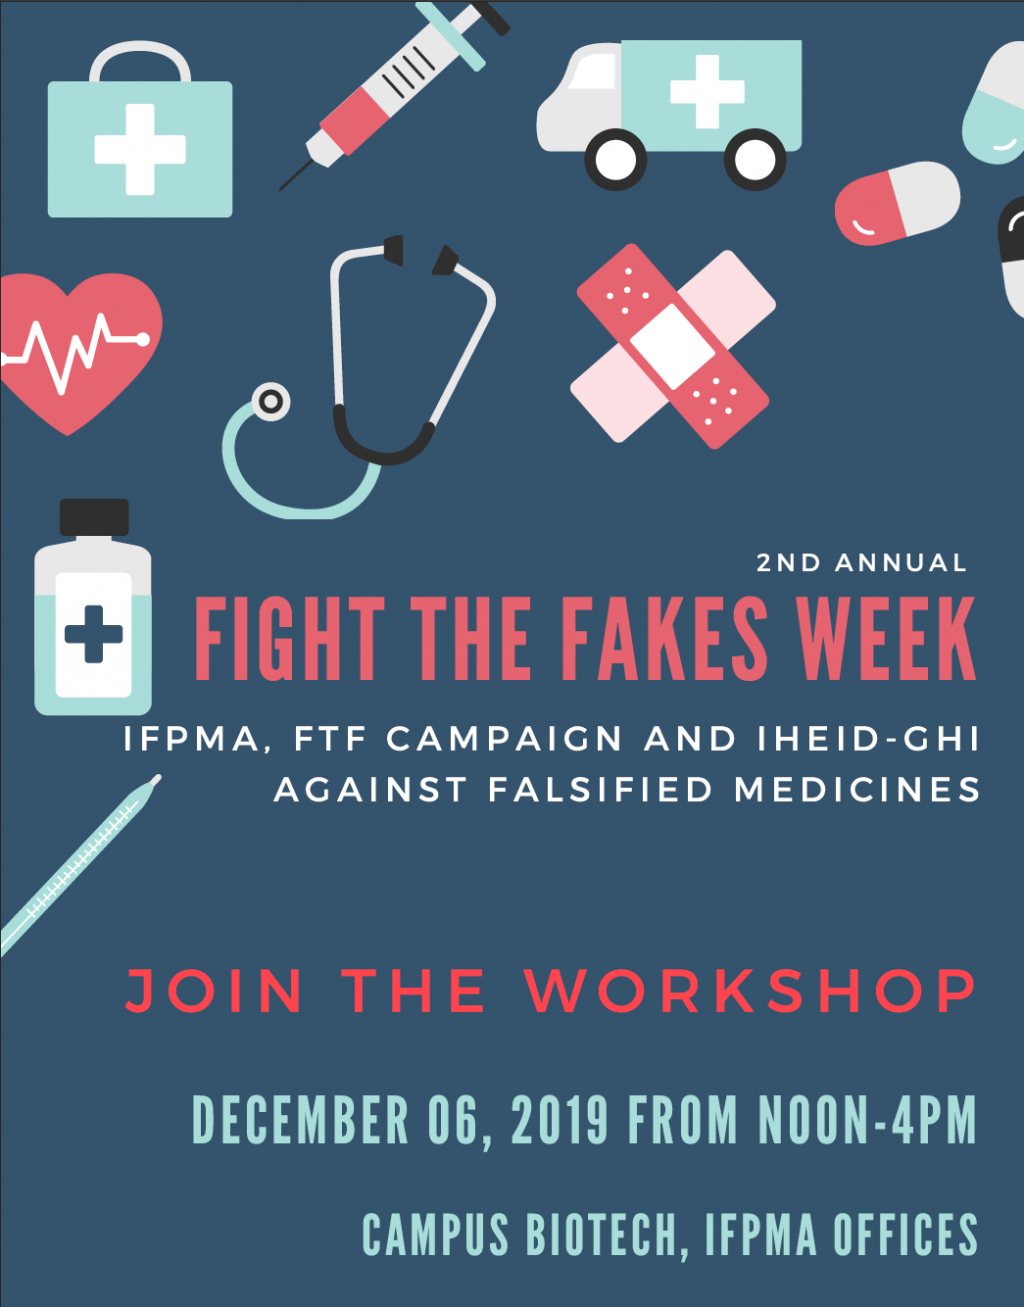 IFPMA & the Geneva Graduate Institute will fight the fakes during #FTFWeek!